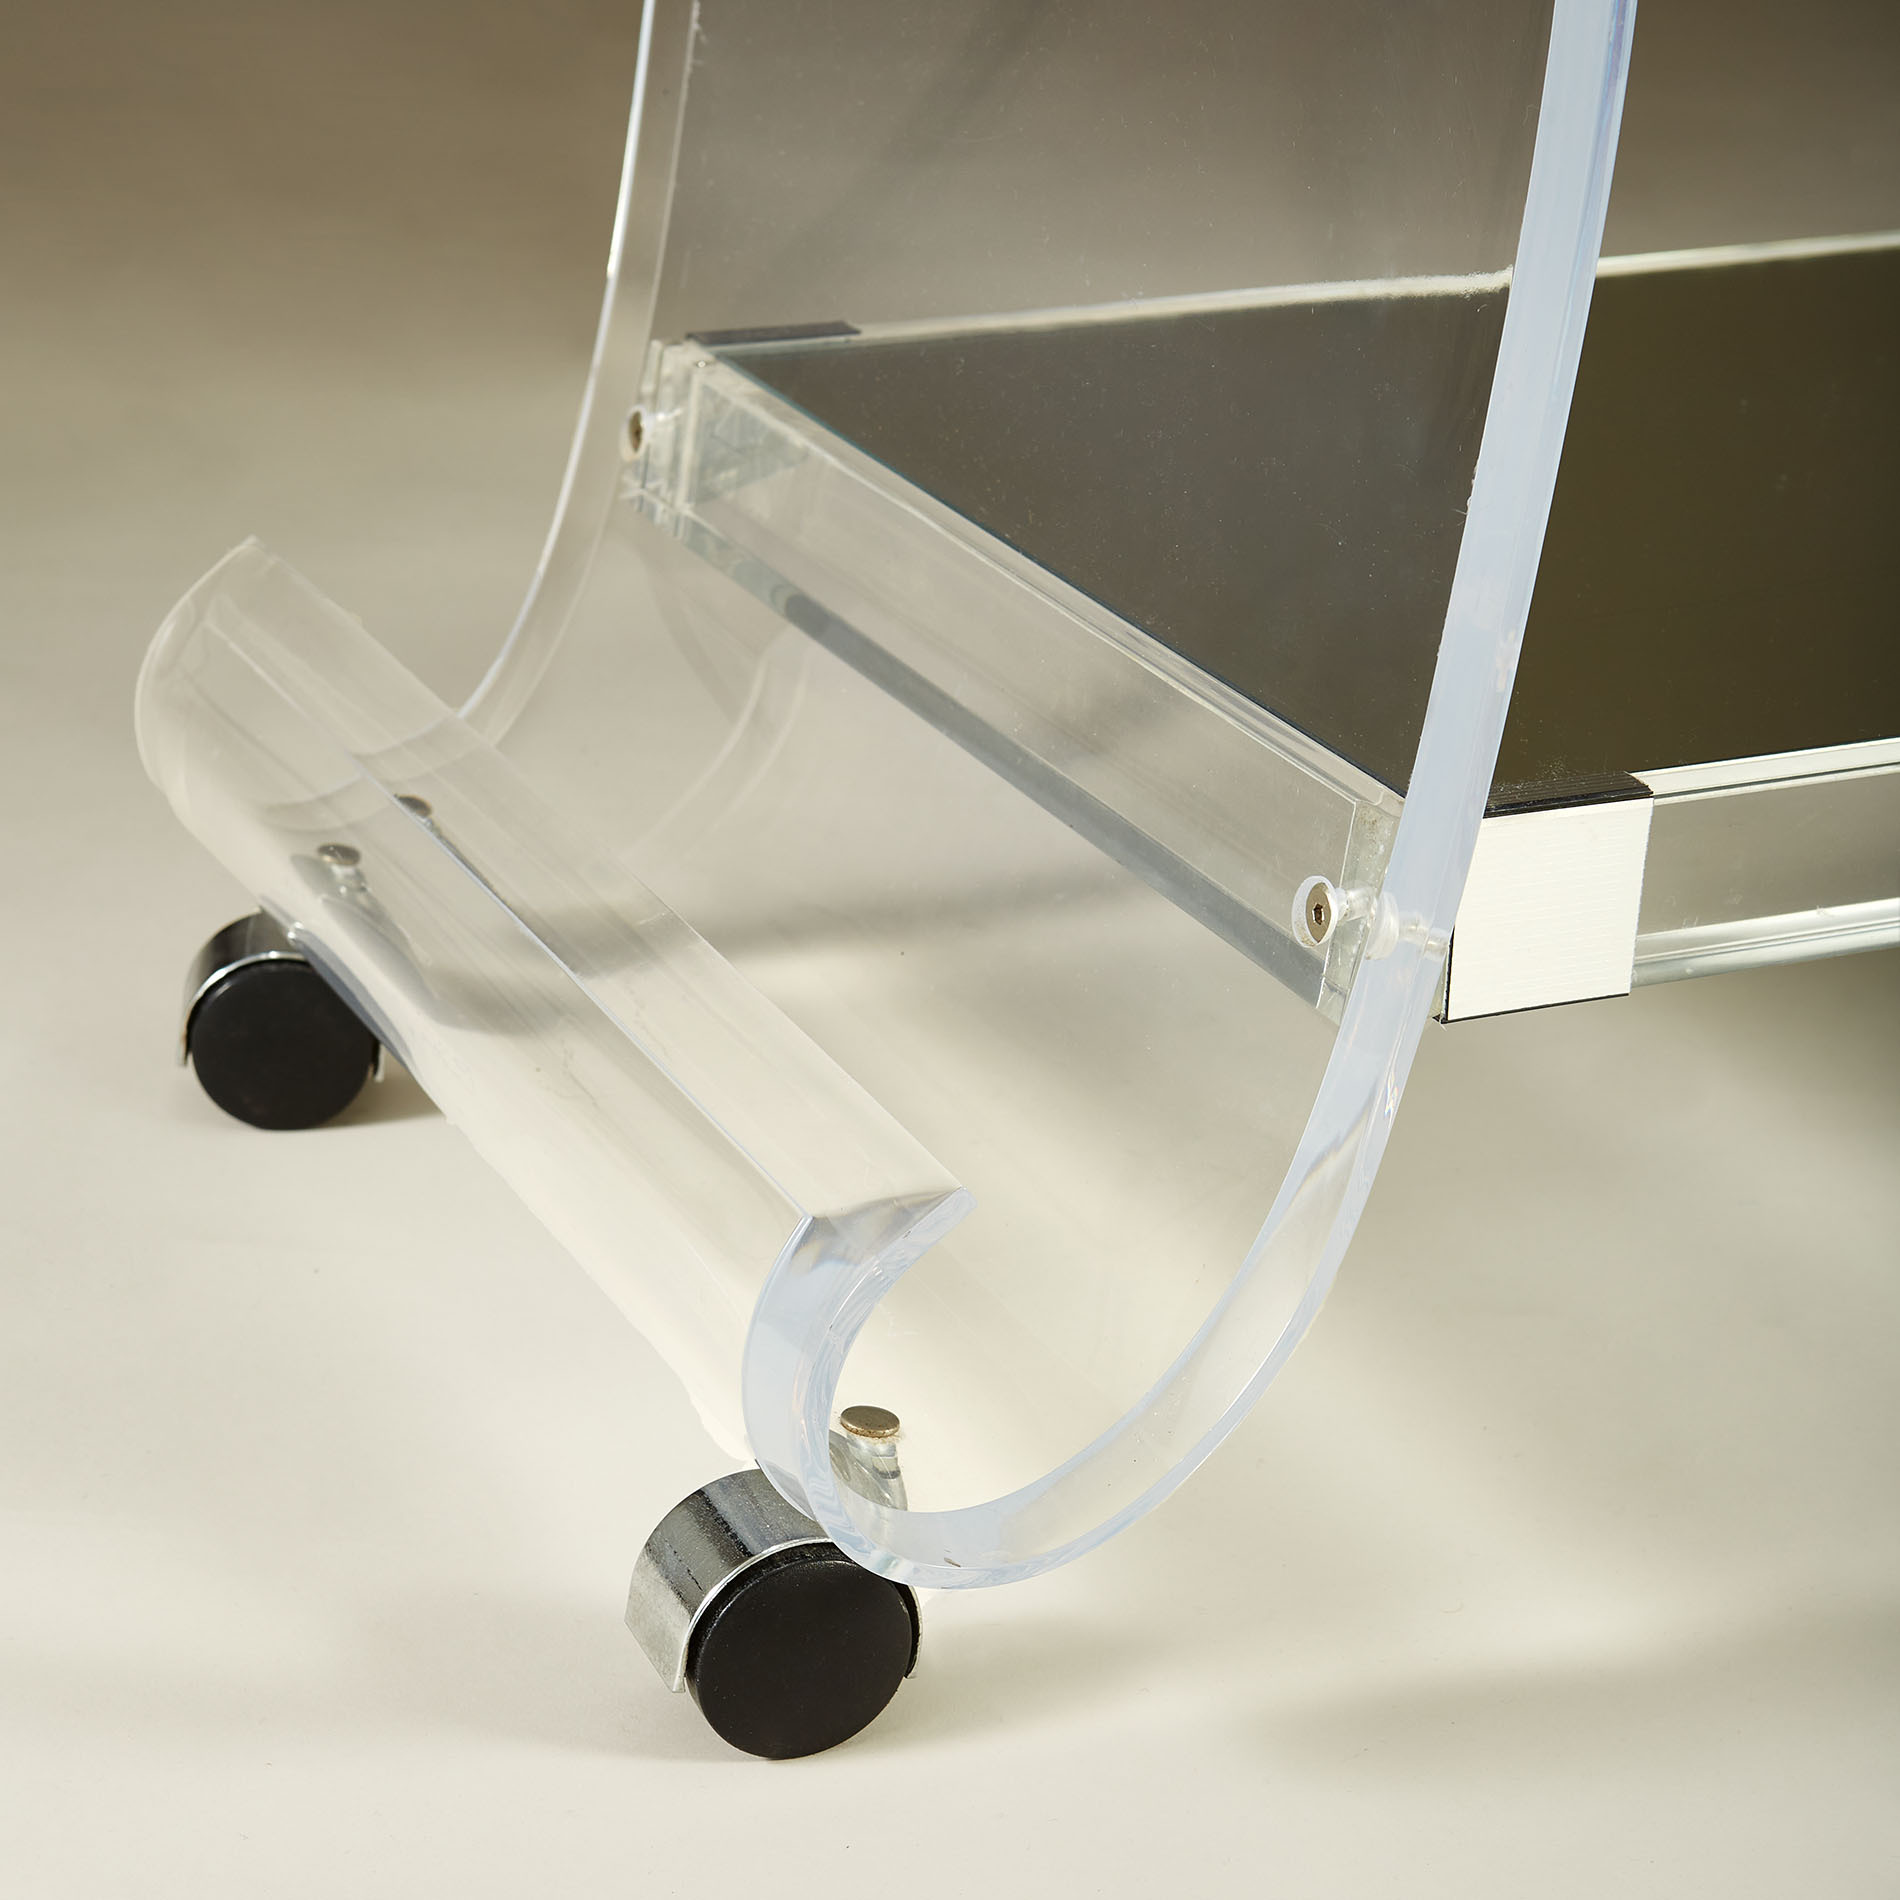 Us Lucite Drinks Trolley 20210225 Valerie Wade 3 148 V1